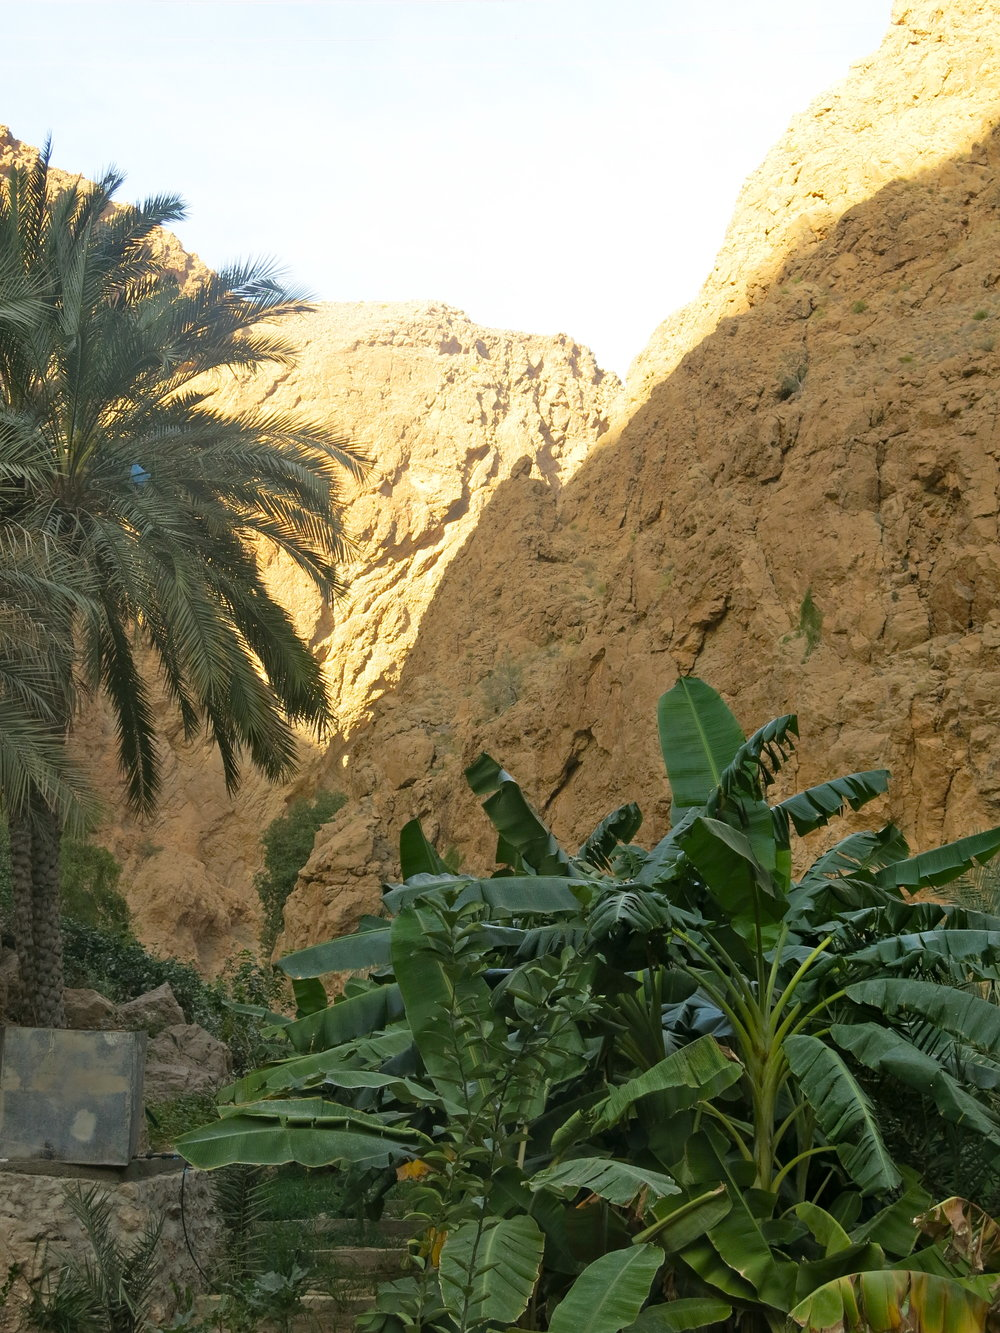 Scenery during the hike in Wadi Shab